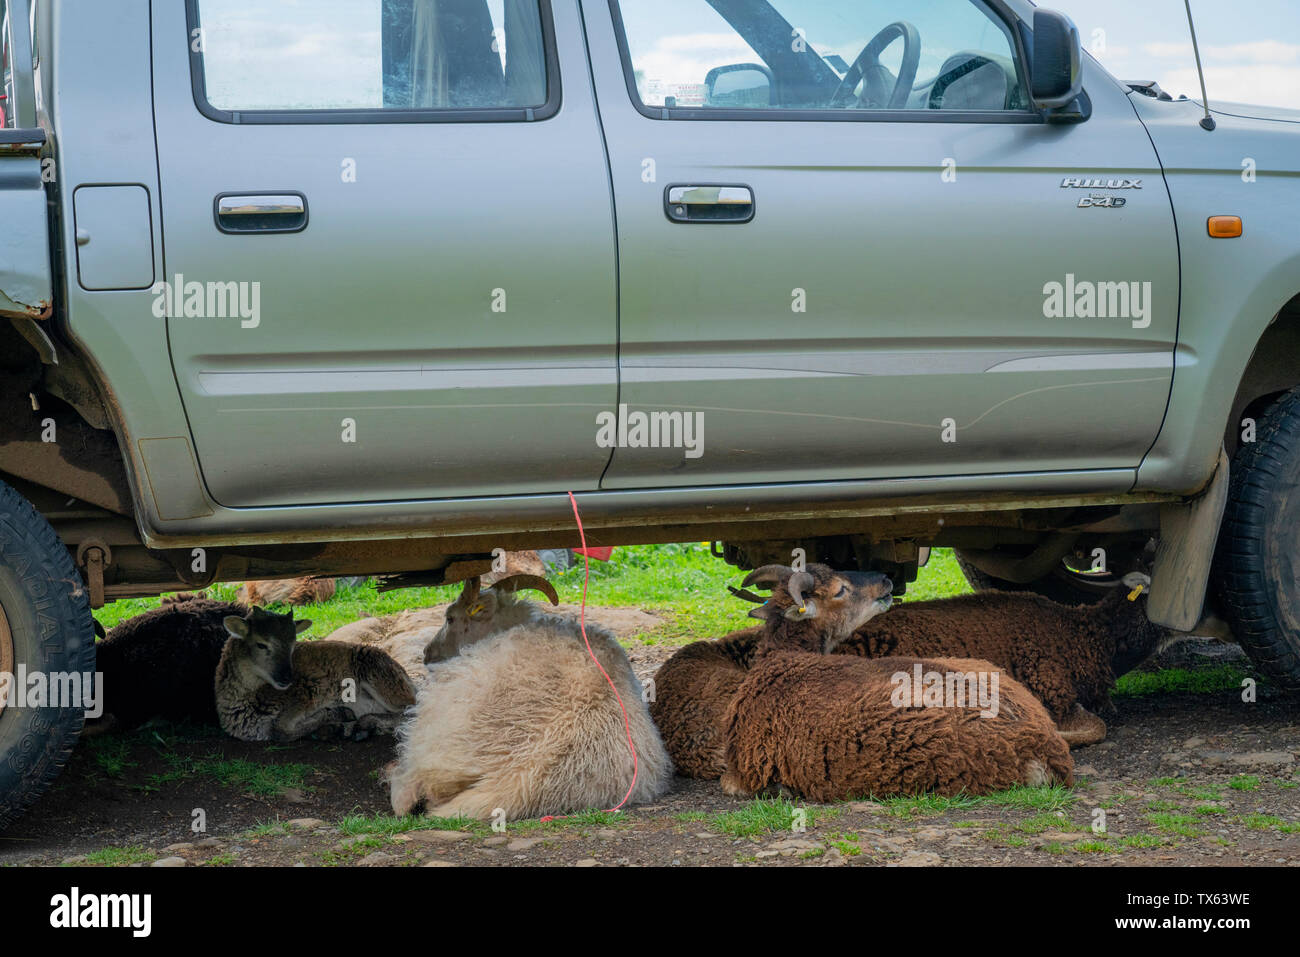 Toyota Hilux Stock Photos & Toyota Hilux Stock Images - Alamy